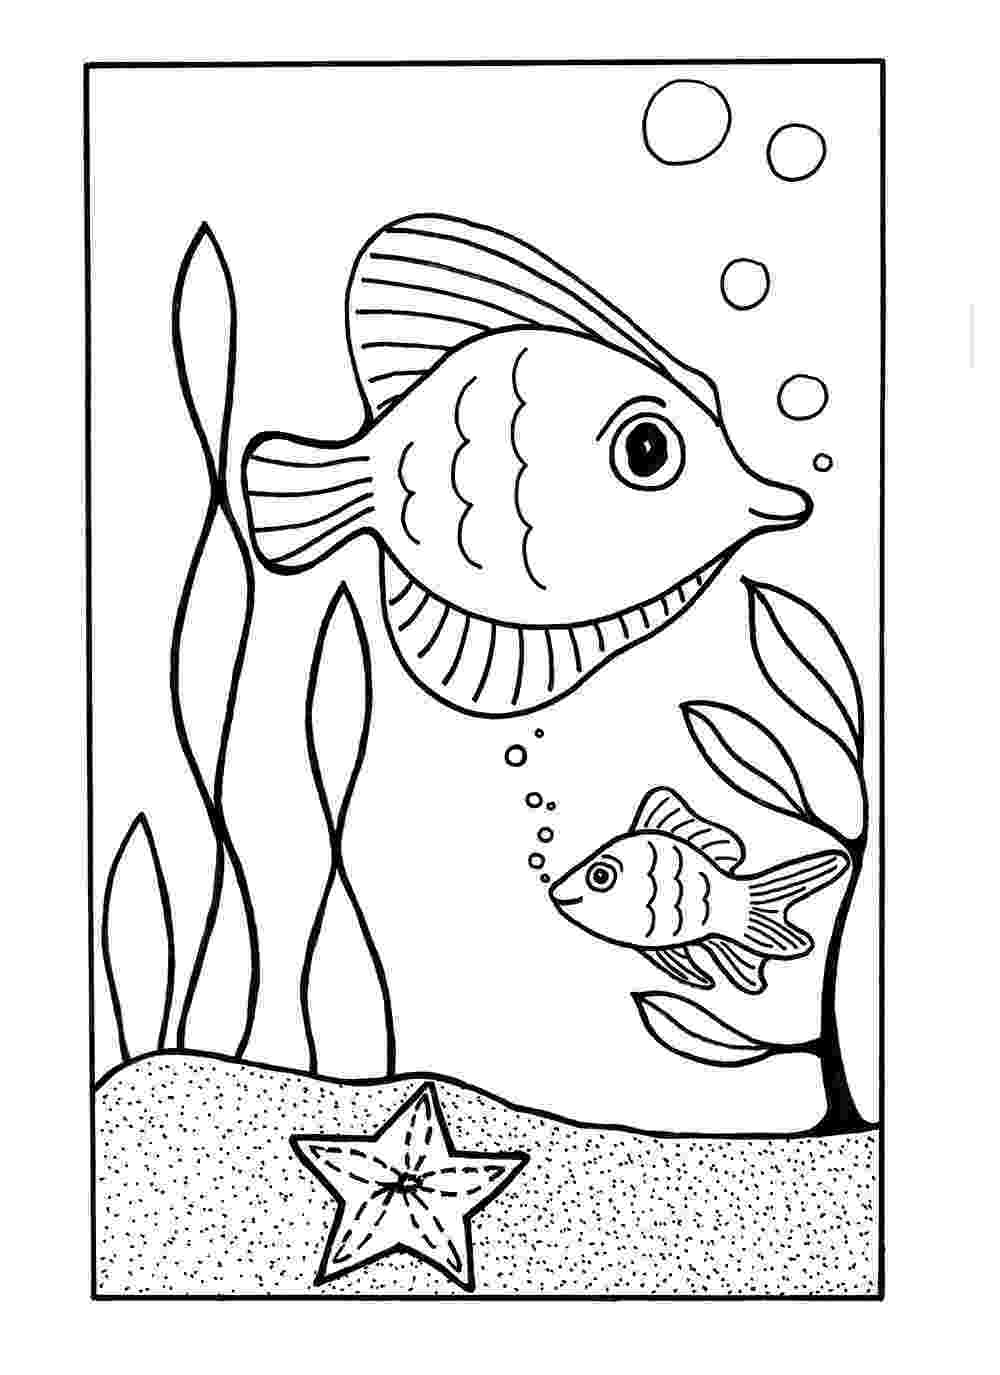 pictures to print zebra coloring pages free printable kids coloring pages pictures print to 1 1